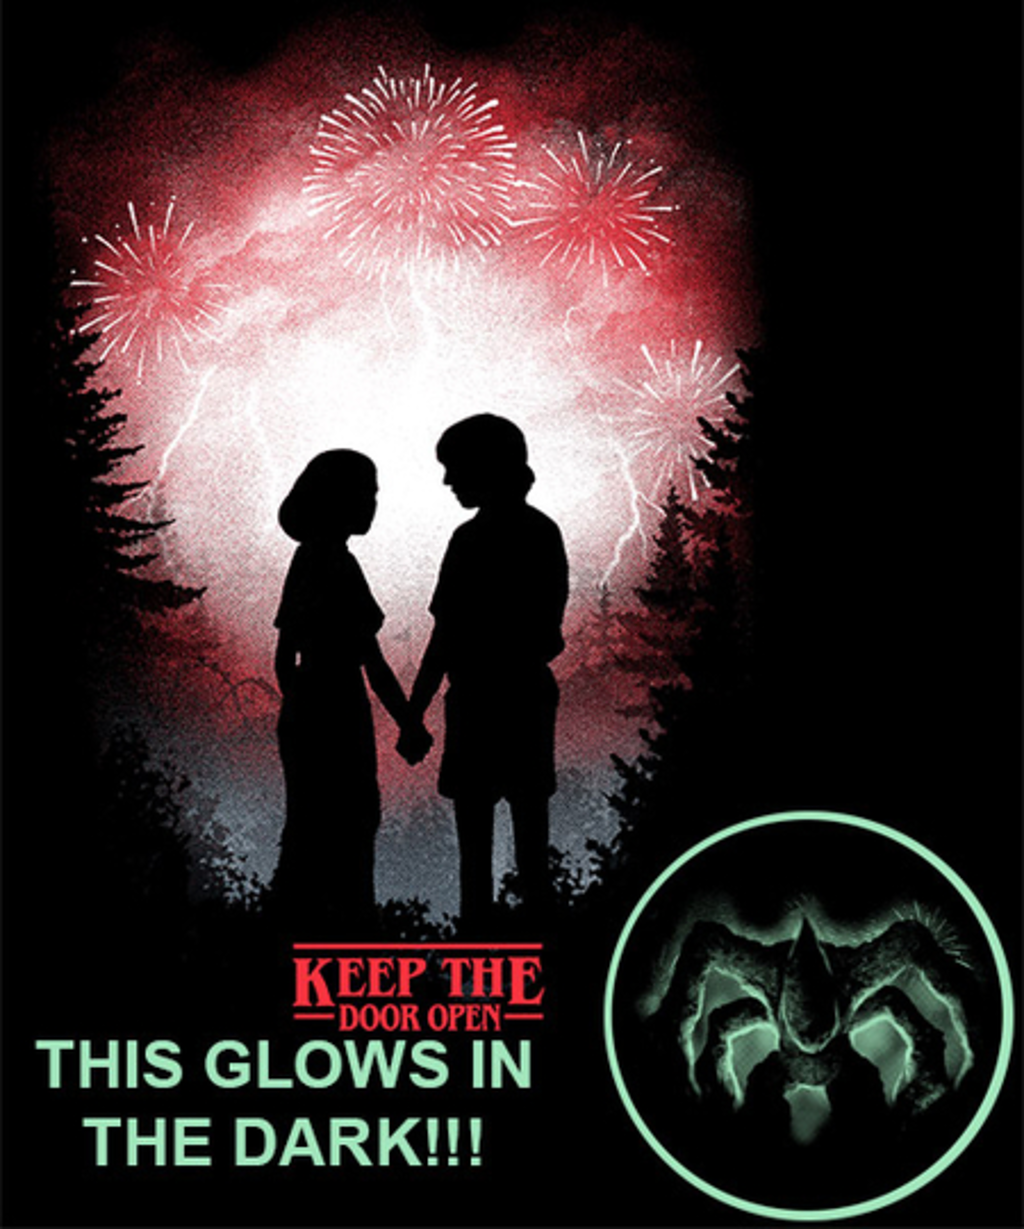 Qwertee: Keep the door open